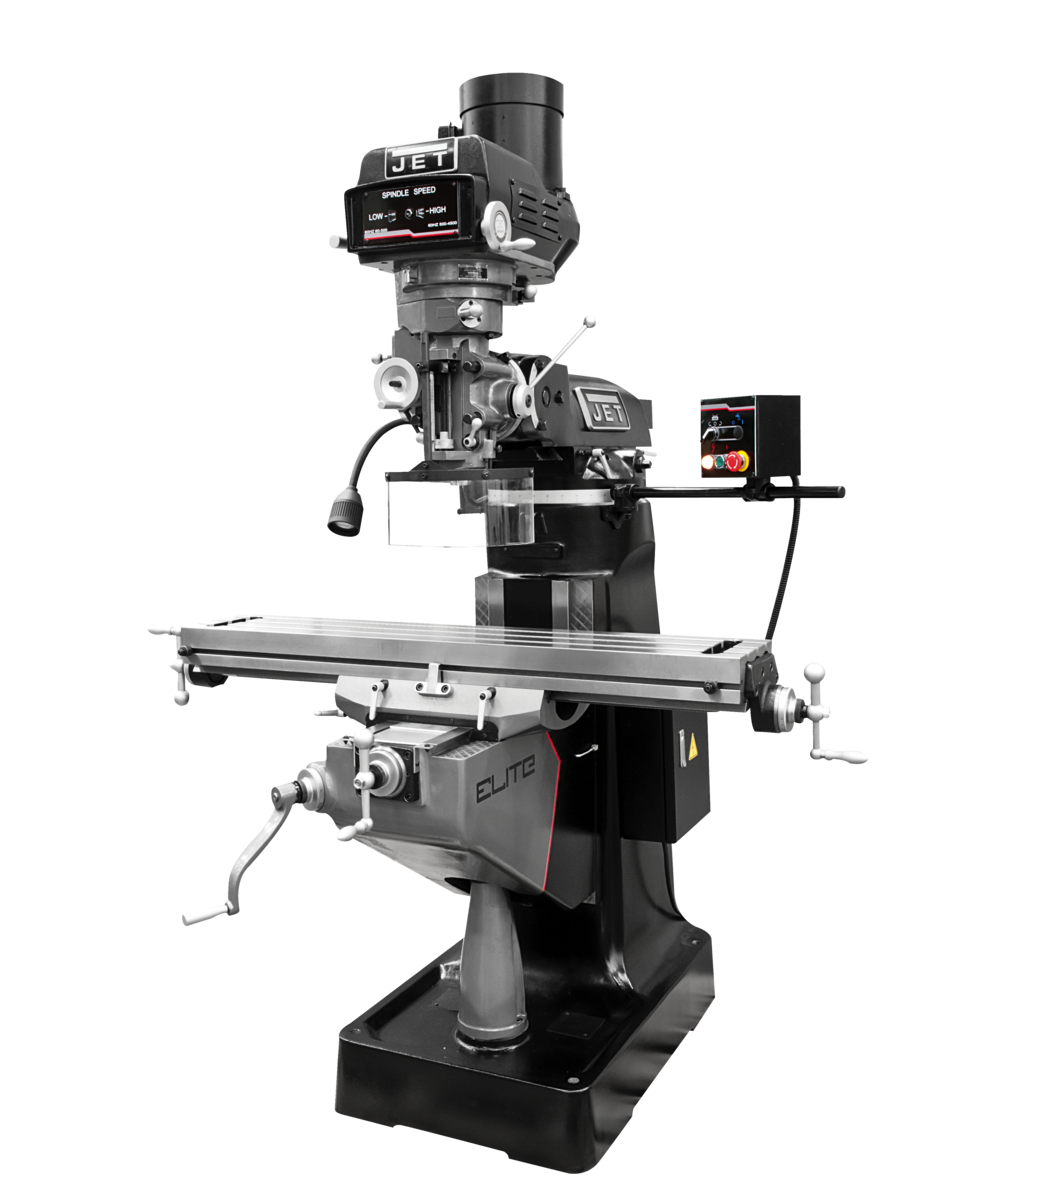 ETM-949 Mill with 3-Axis Newall DP700 (Quill) DRO and Servo X, Y-Axis Powerfeeds and USA Air Powered Draw Bar